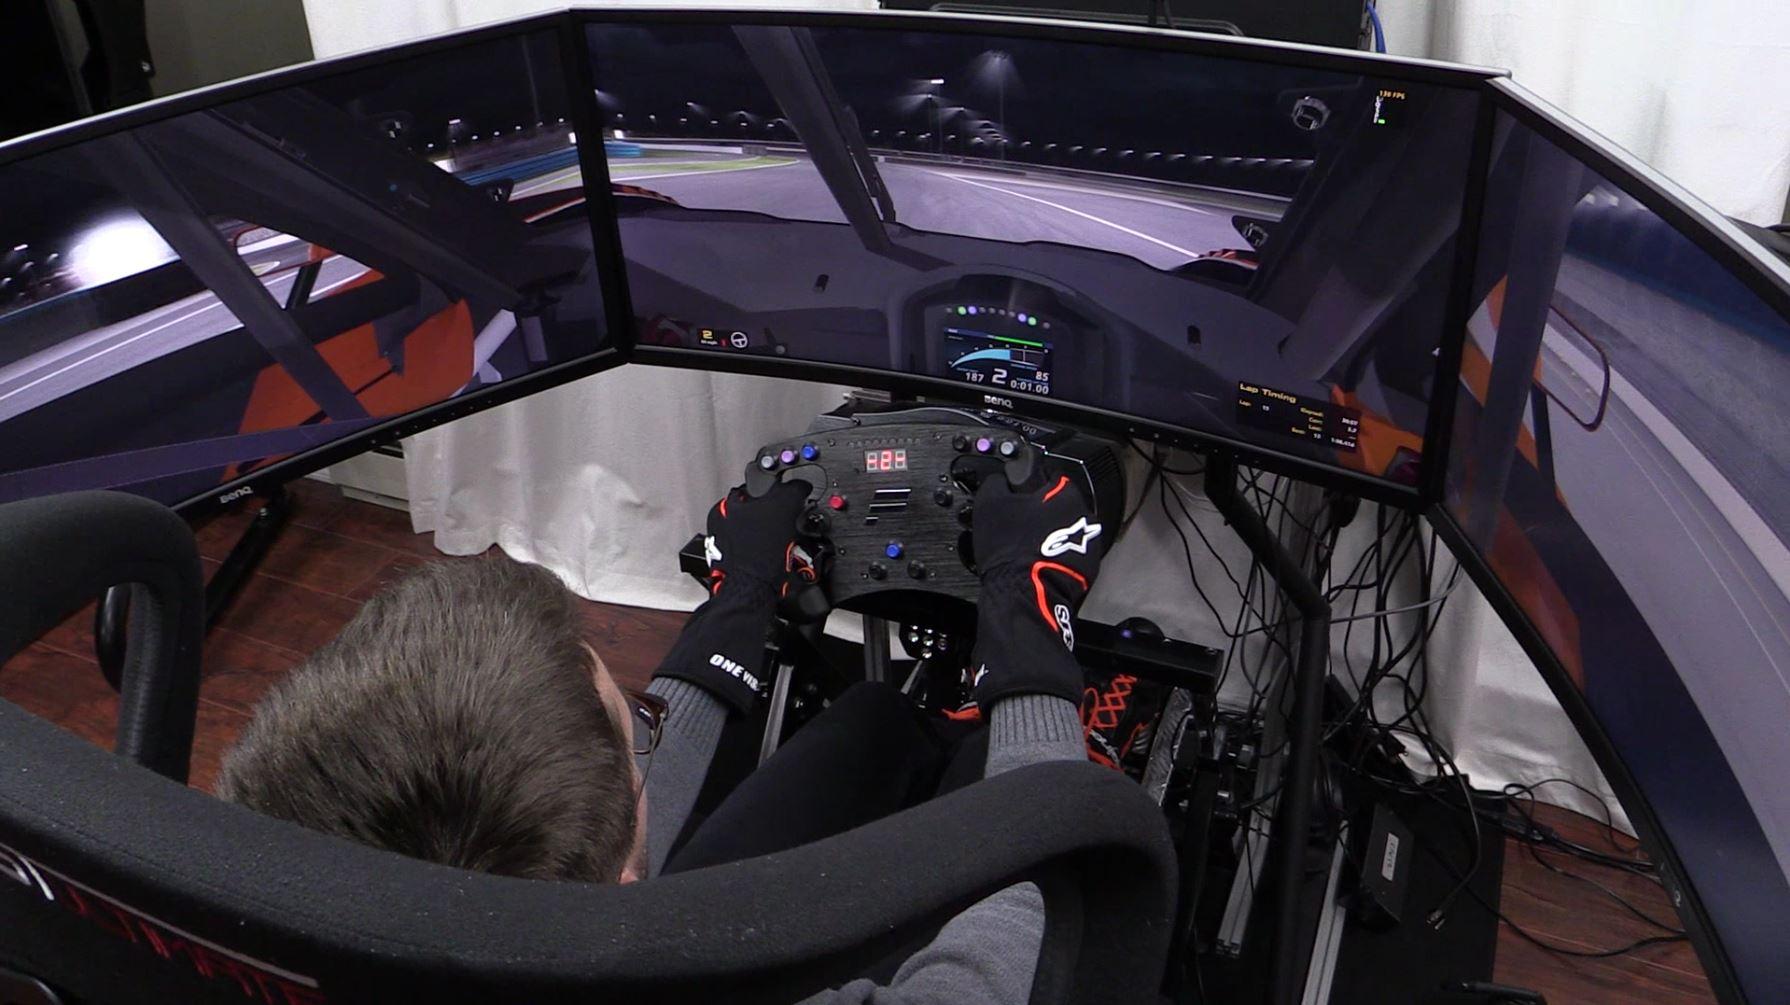 fanatec-clubsport-wheel-base-v2-iracing-daytona-next-level-motion-platform-v3